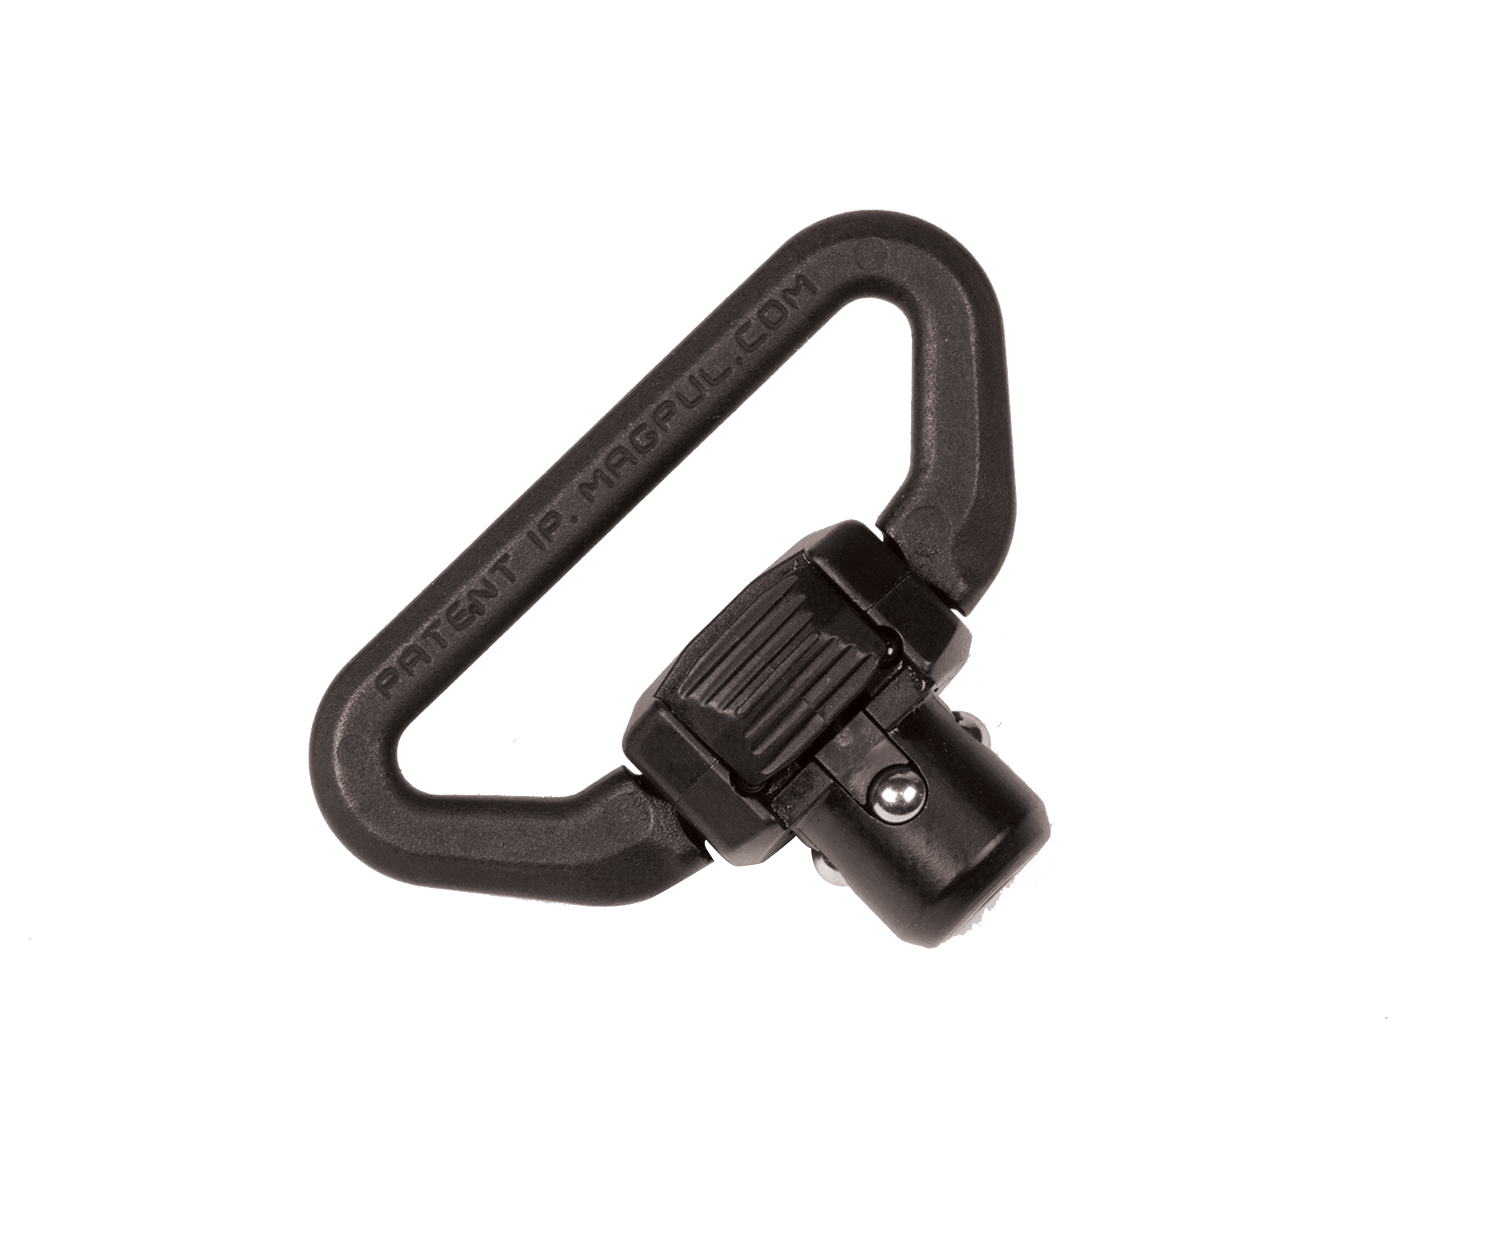 Sling clip m lok. Magpul releases new products